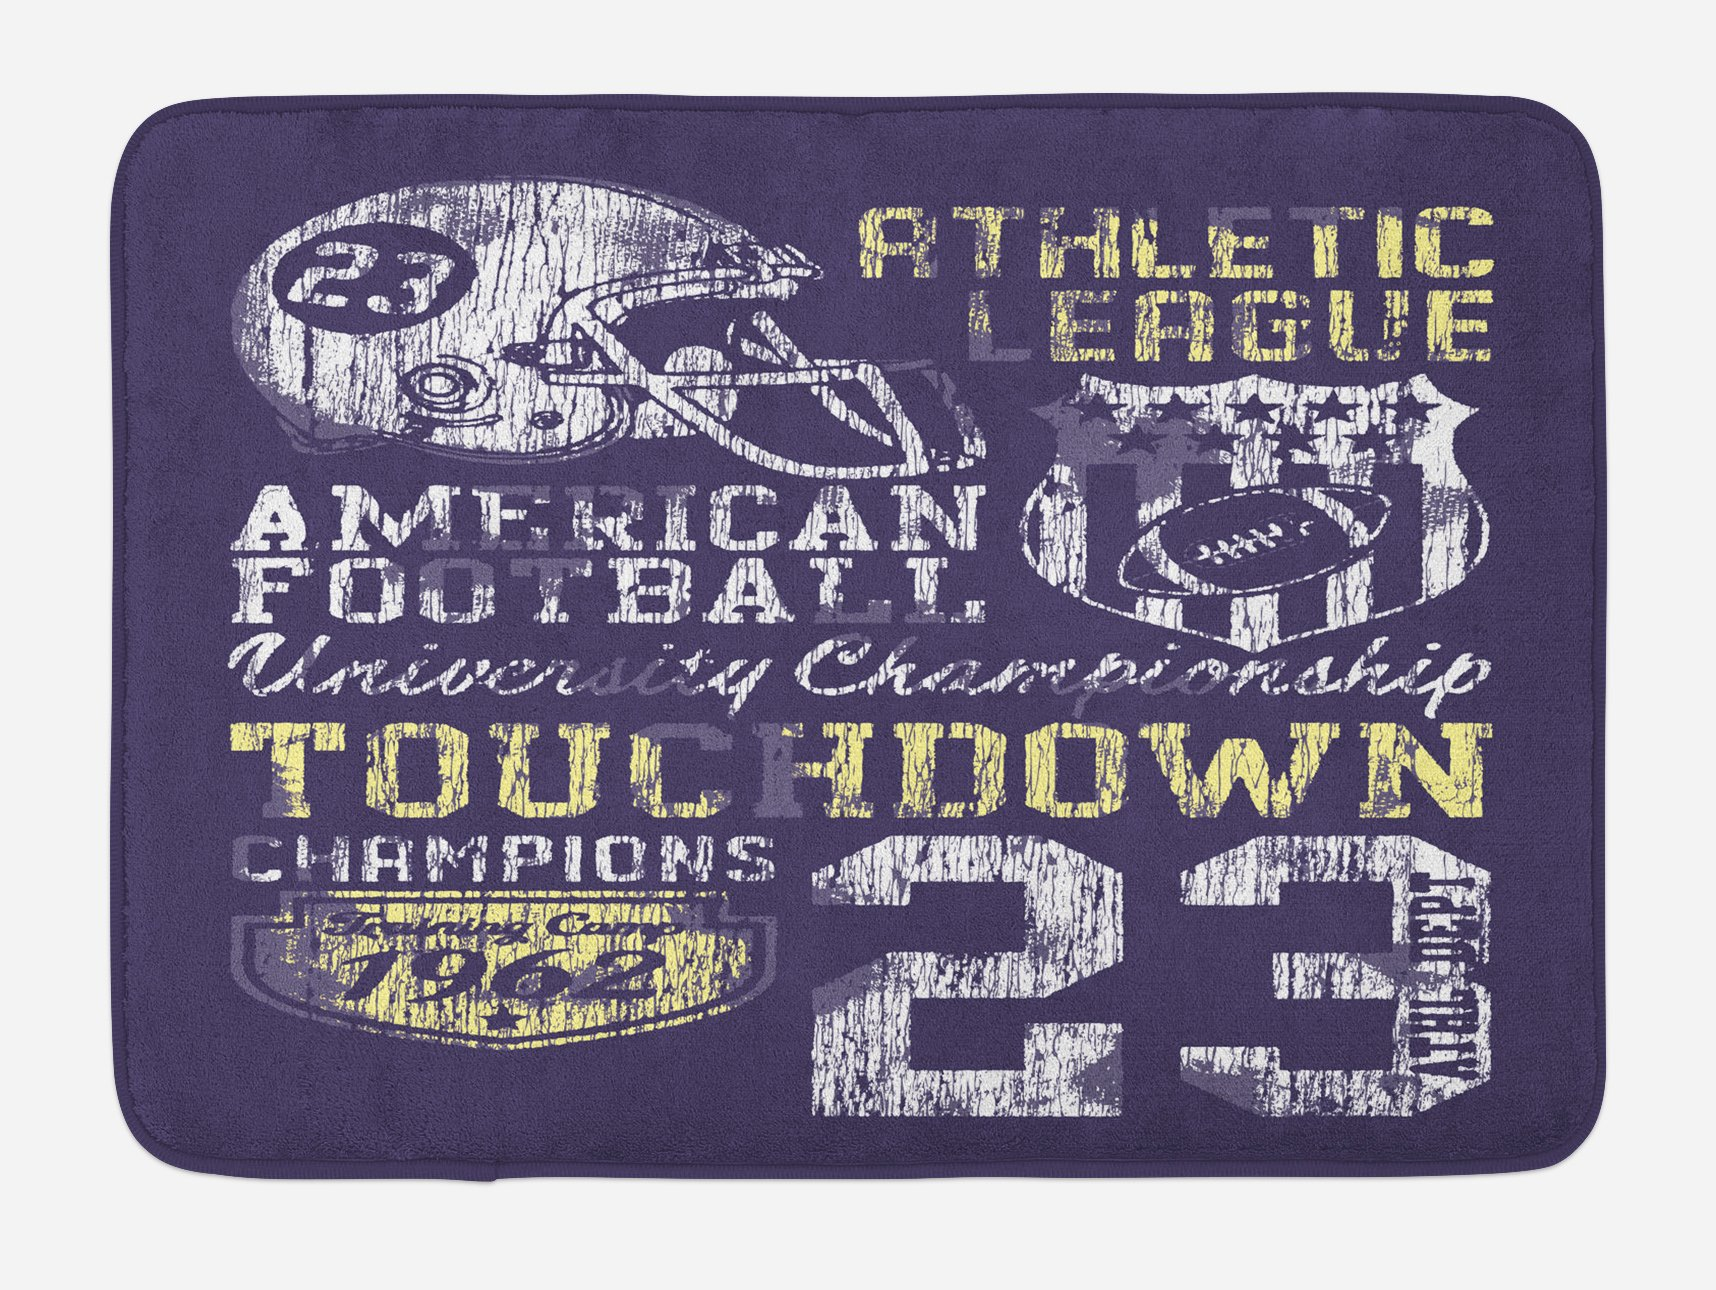 Ambesonne Sports Bath Mat, Retro Style American Football College Theme Illustration Athletic Championship Apparel, Plush Bathroom Decor Mat with Non Slip Backing, 29.5 W X 17.5 W Inches, Purple by Ambesonne (Image #1)